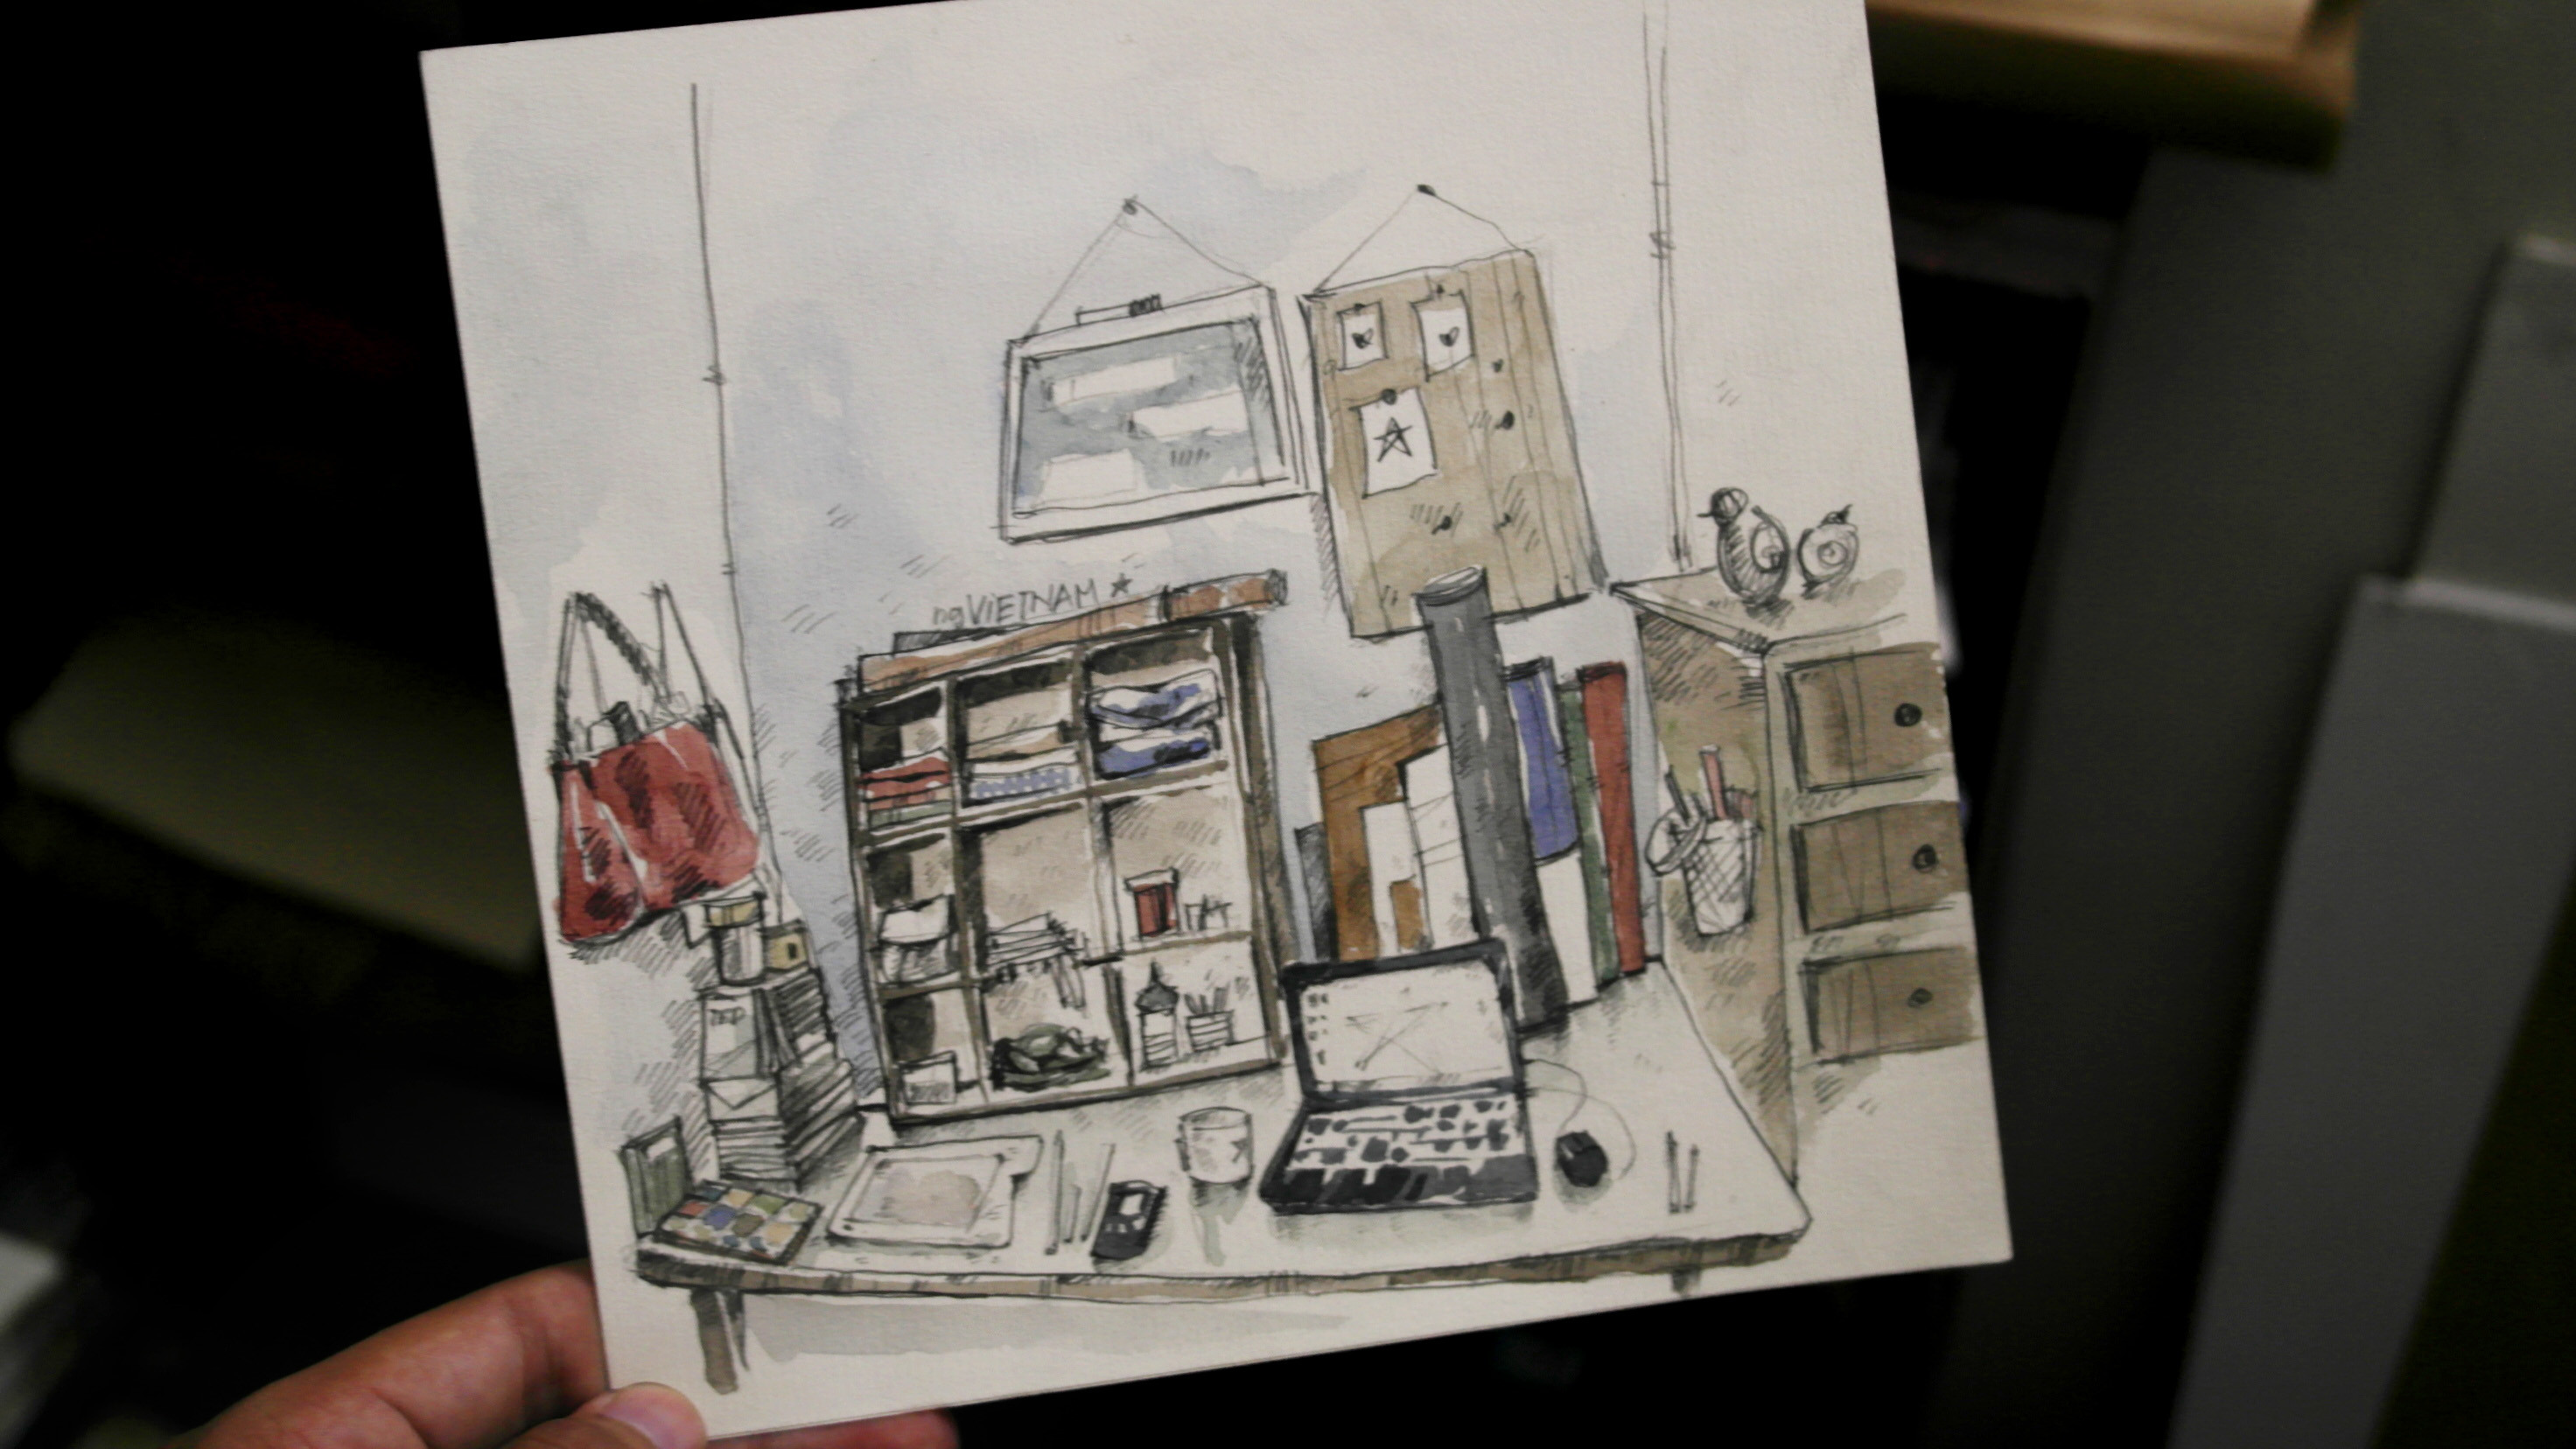 FastSKETCH of my WORKspace